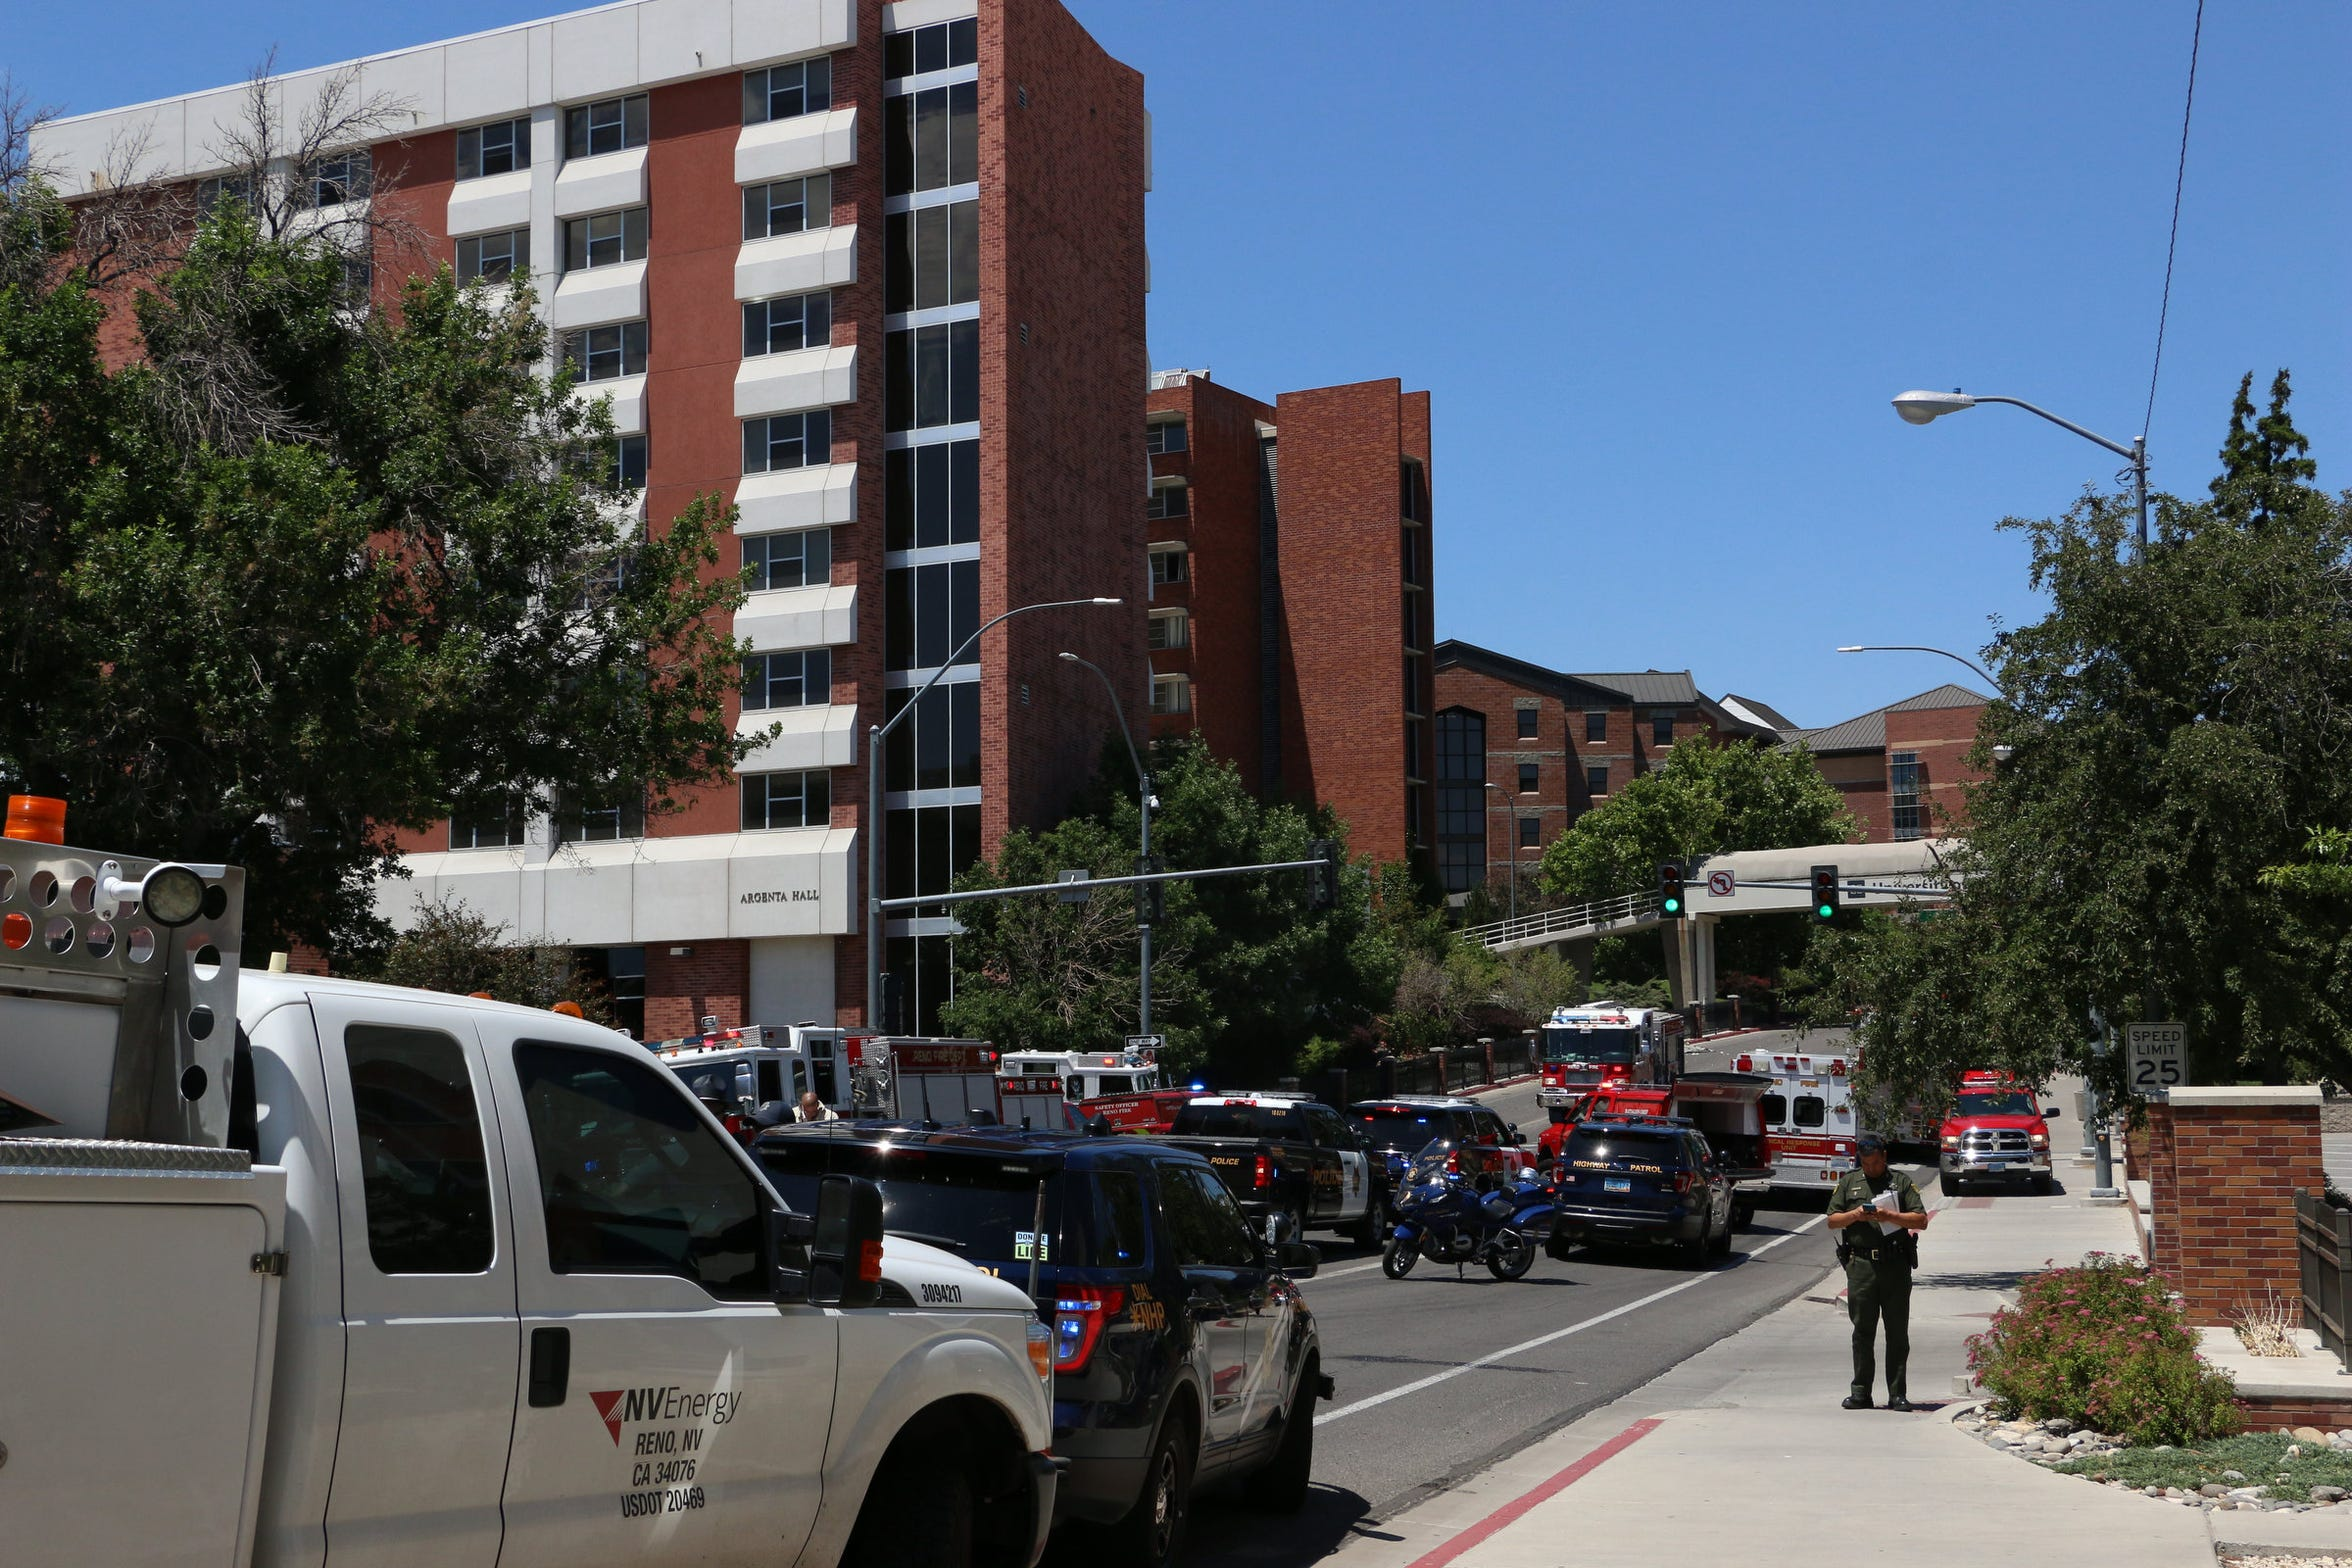 Rescue personnel respond to an explosion that damaged Argenta and Nye Halls on the University of Nevada, Reno campus on July 5, 2019.